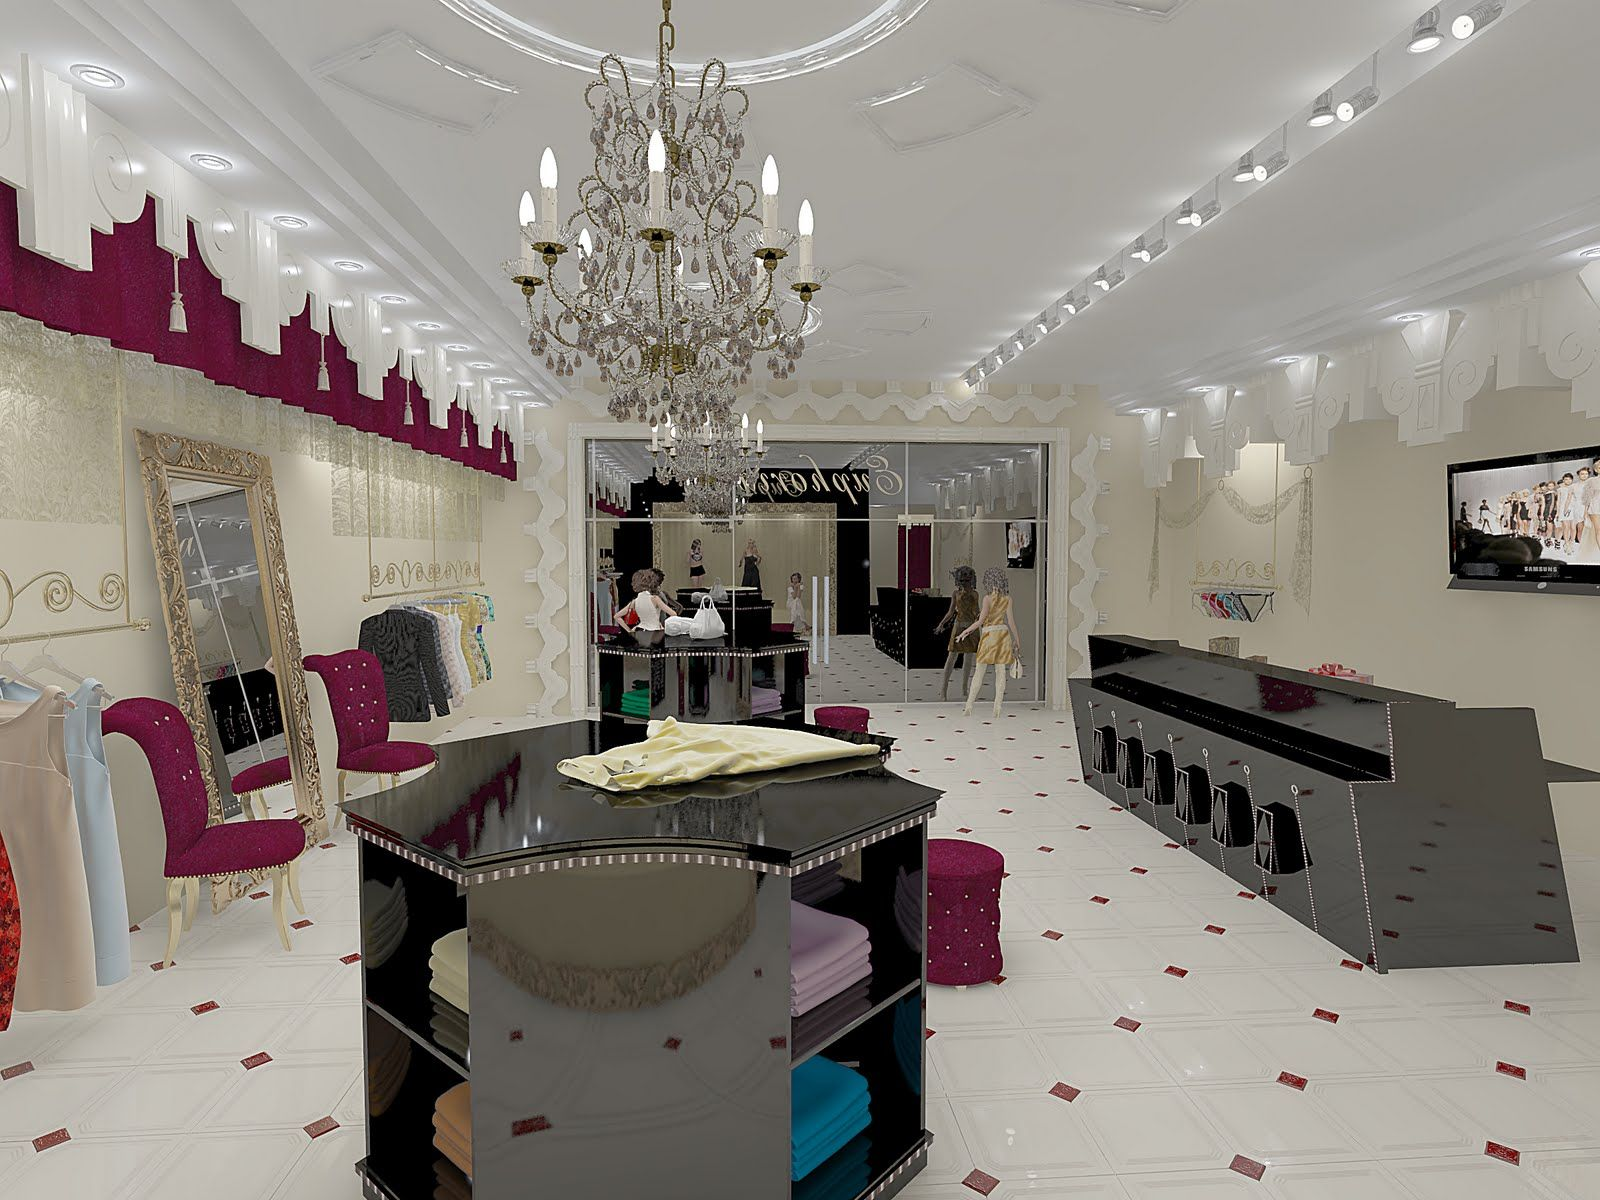 Dress Shop Interior Design Wdbt Pinterest Shop Interior Design And Interiors